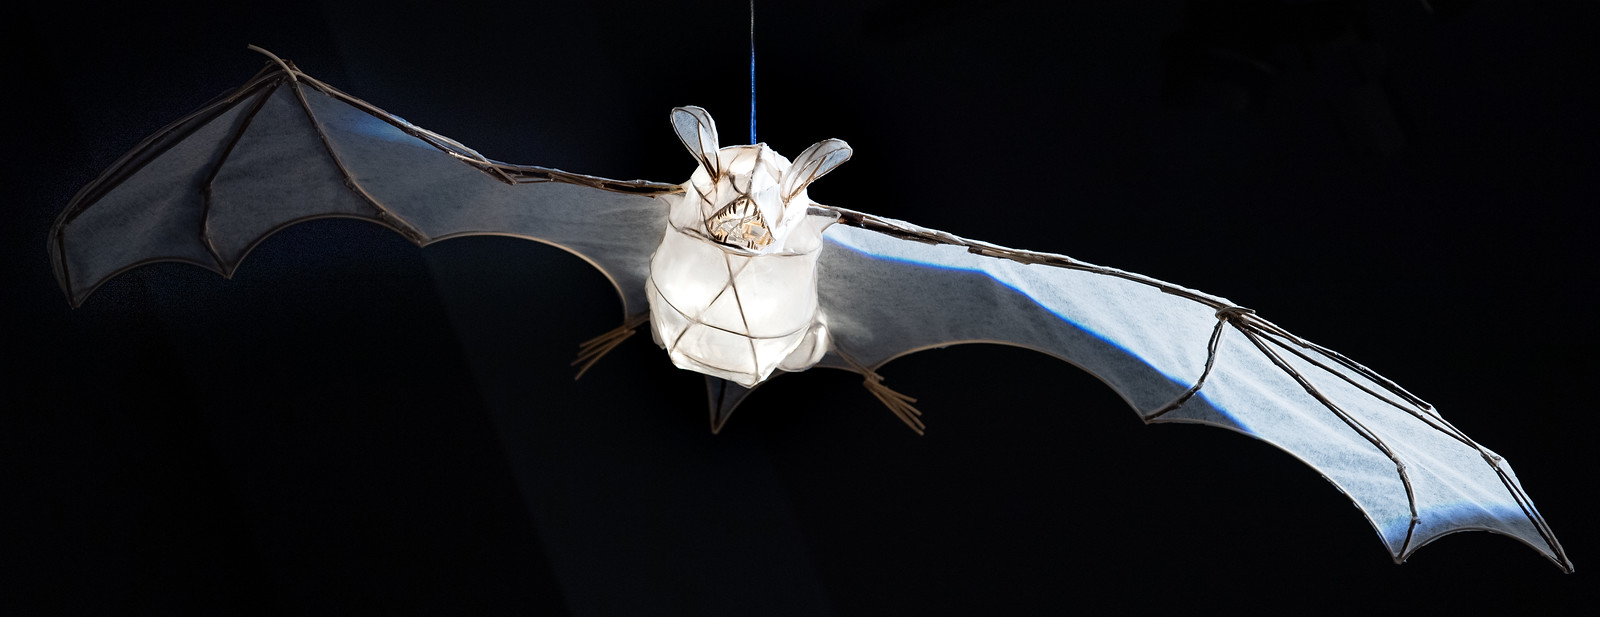 Lantern sculpture of the bat species